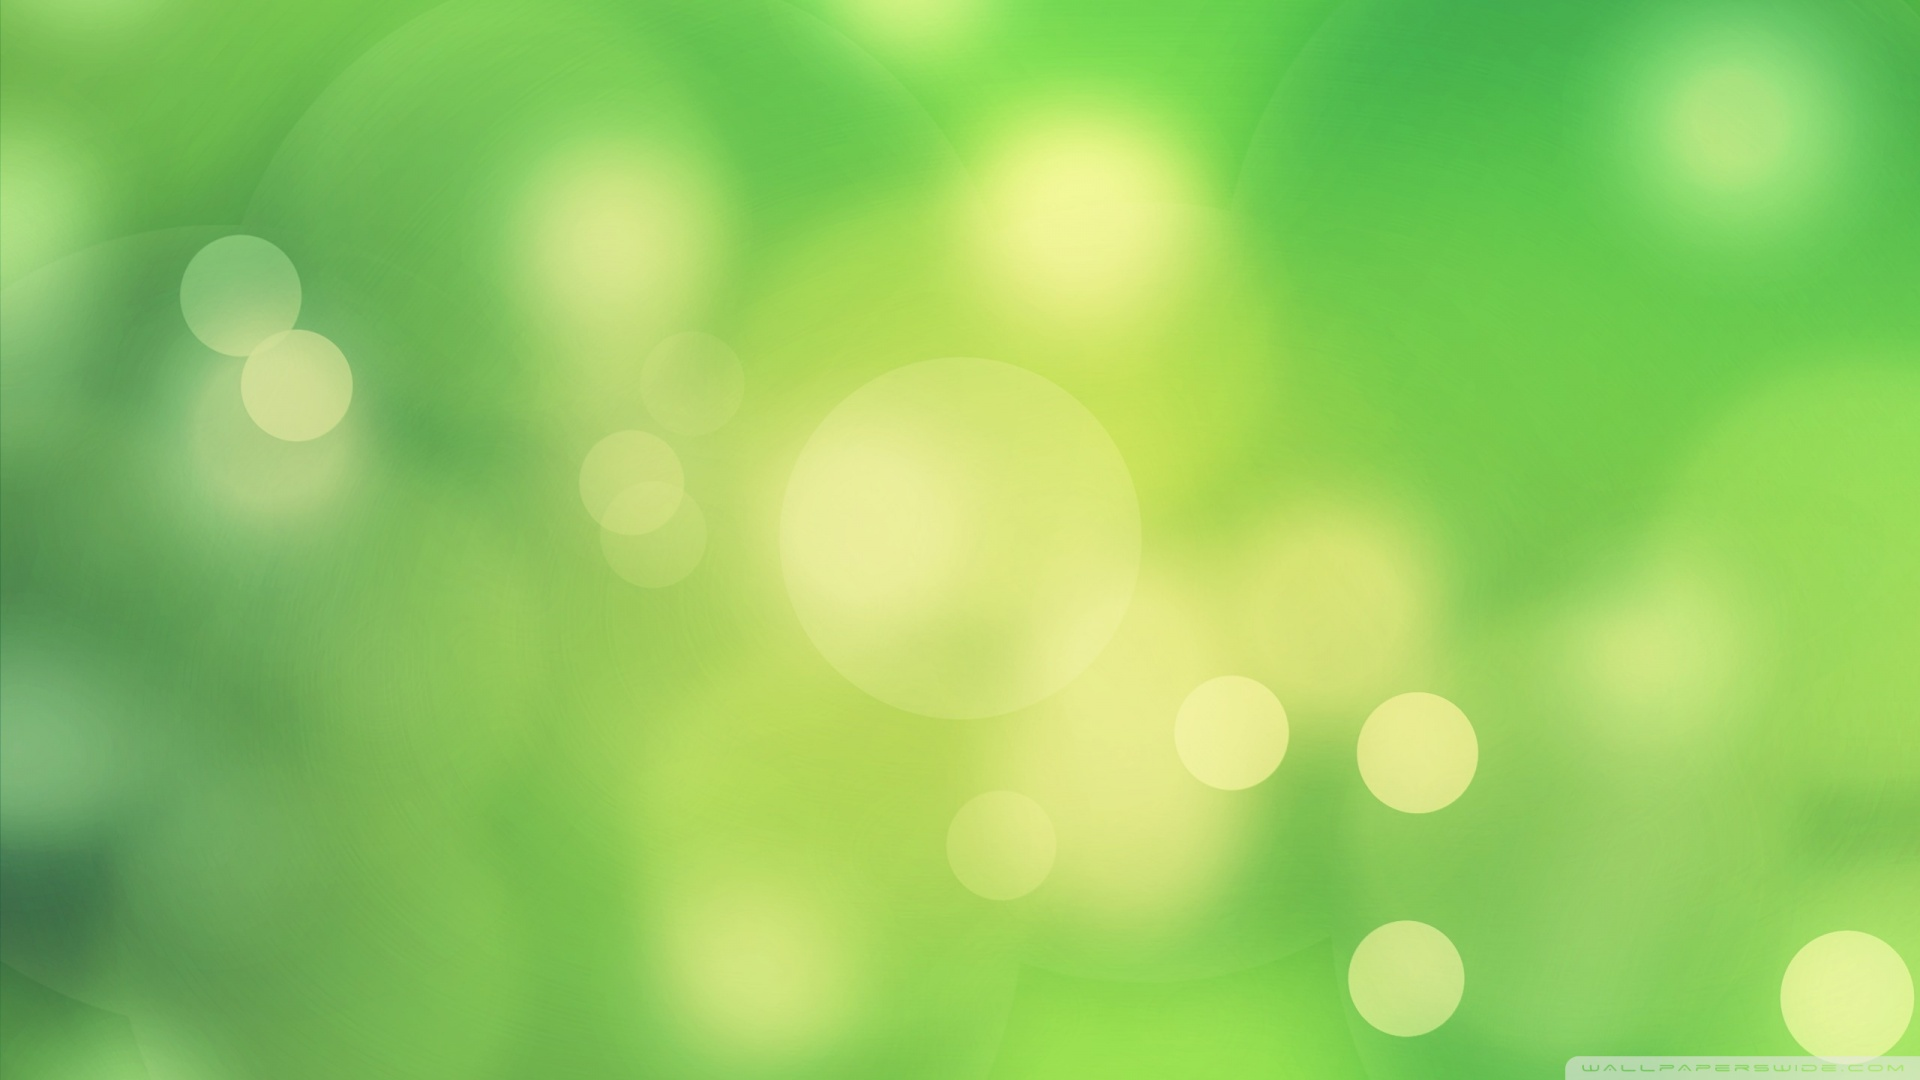 Green Background 2 Wallpaper 1920x1080 Green Background 2 1920x1080